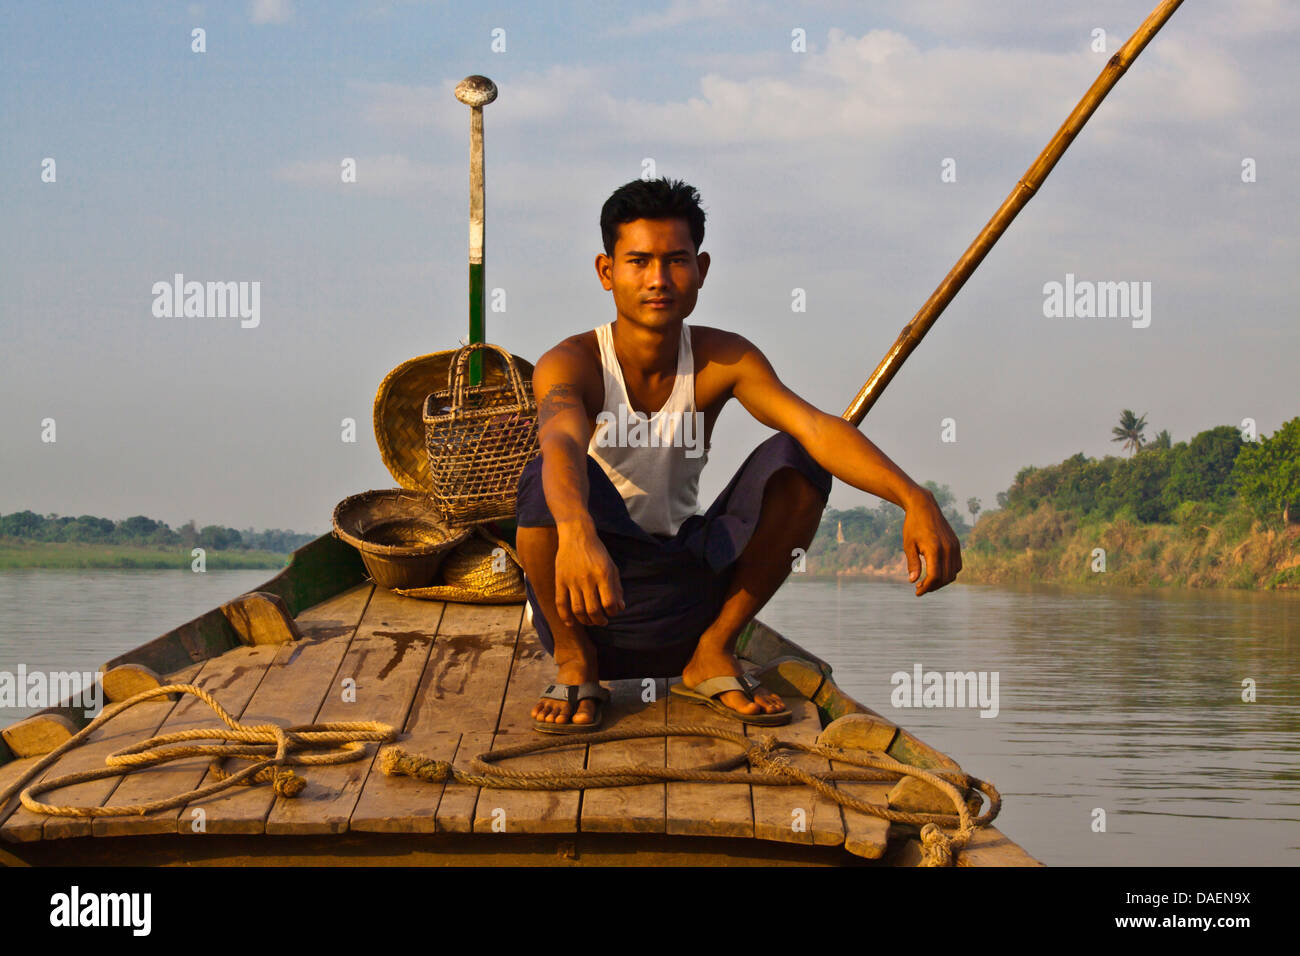 A BOATMAN on the way to INWA which served as the Burmese Kingdoms capital for 400 years, Burma - Stock Image